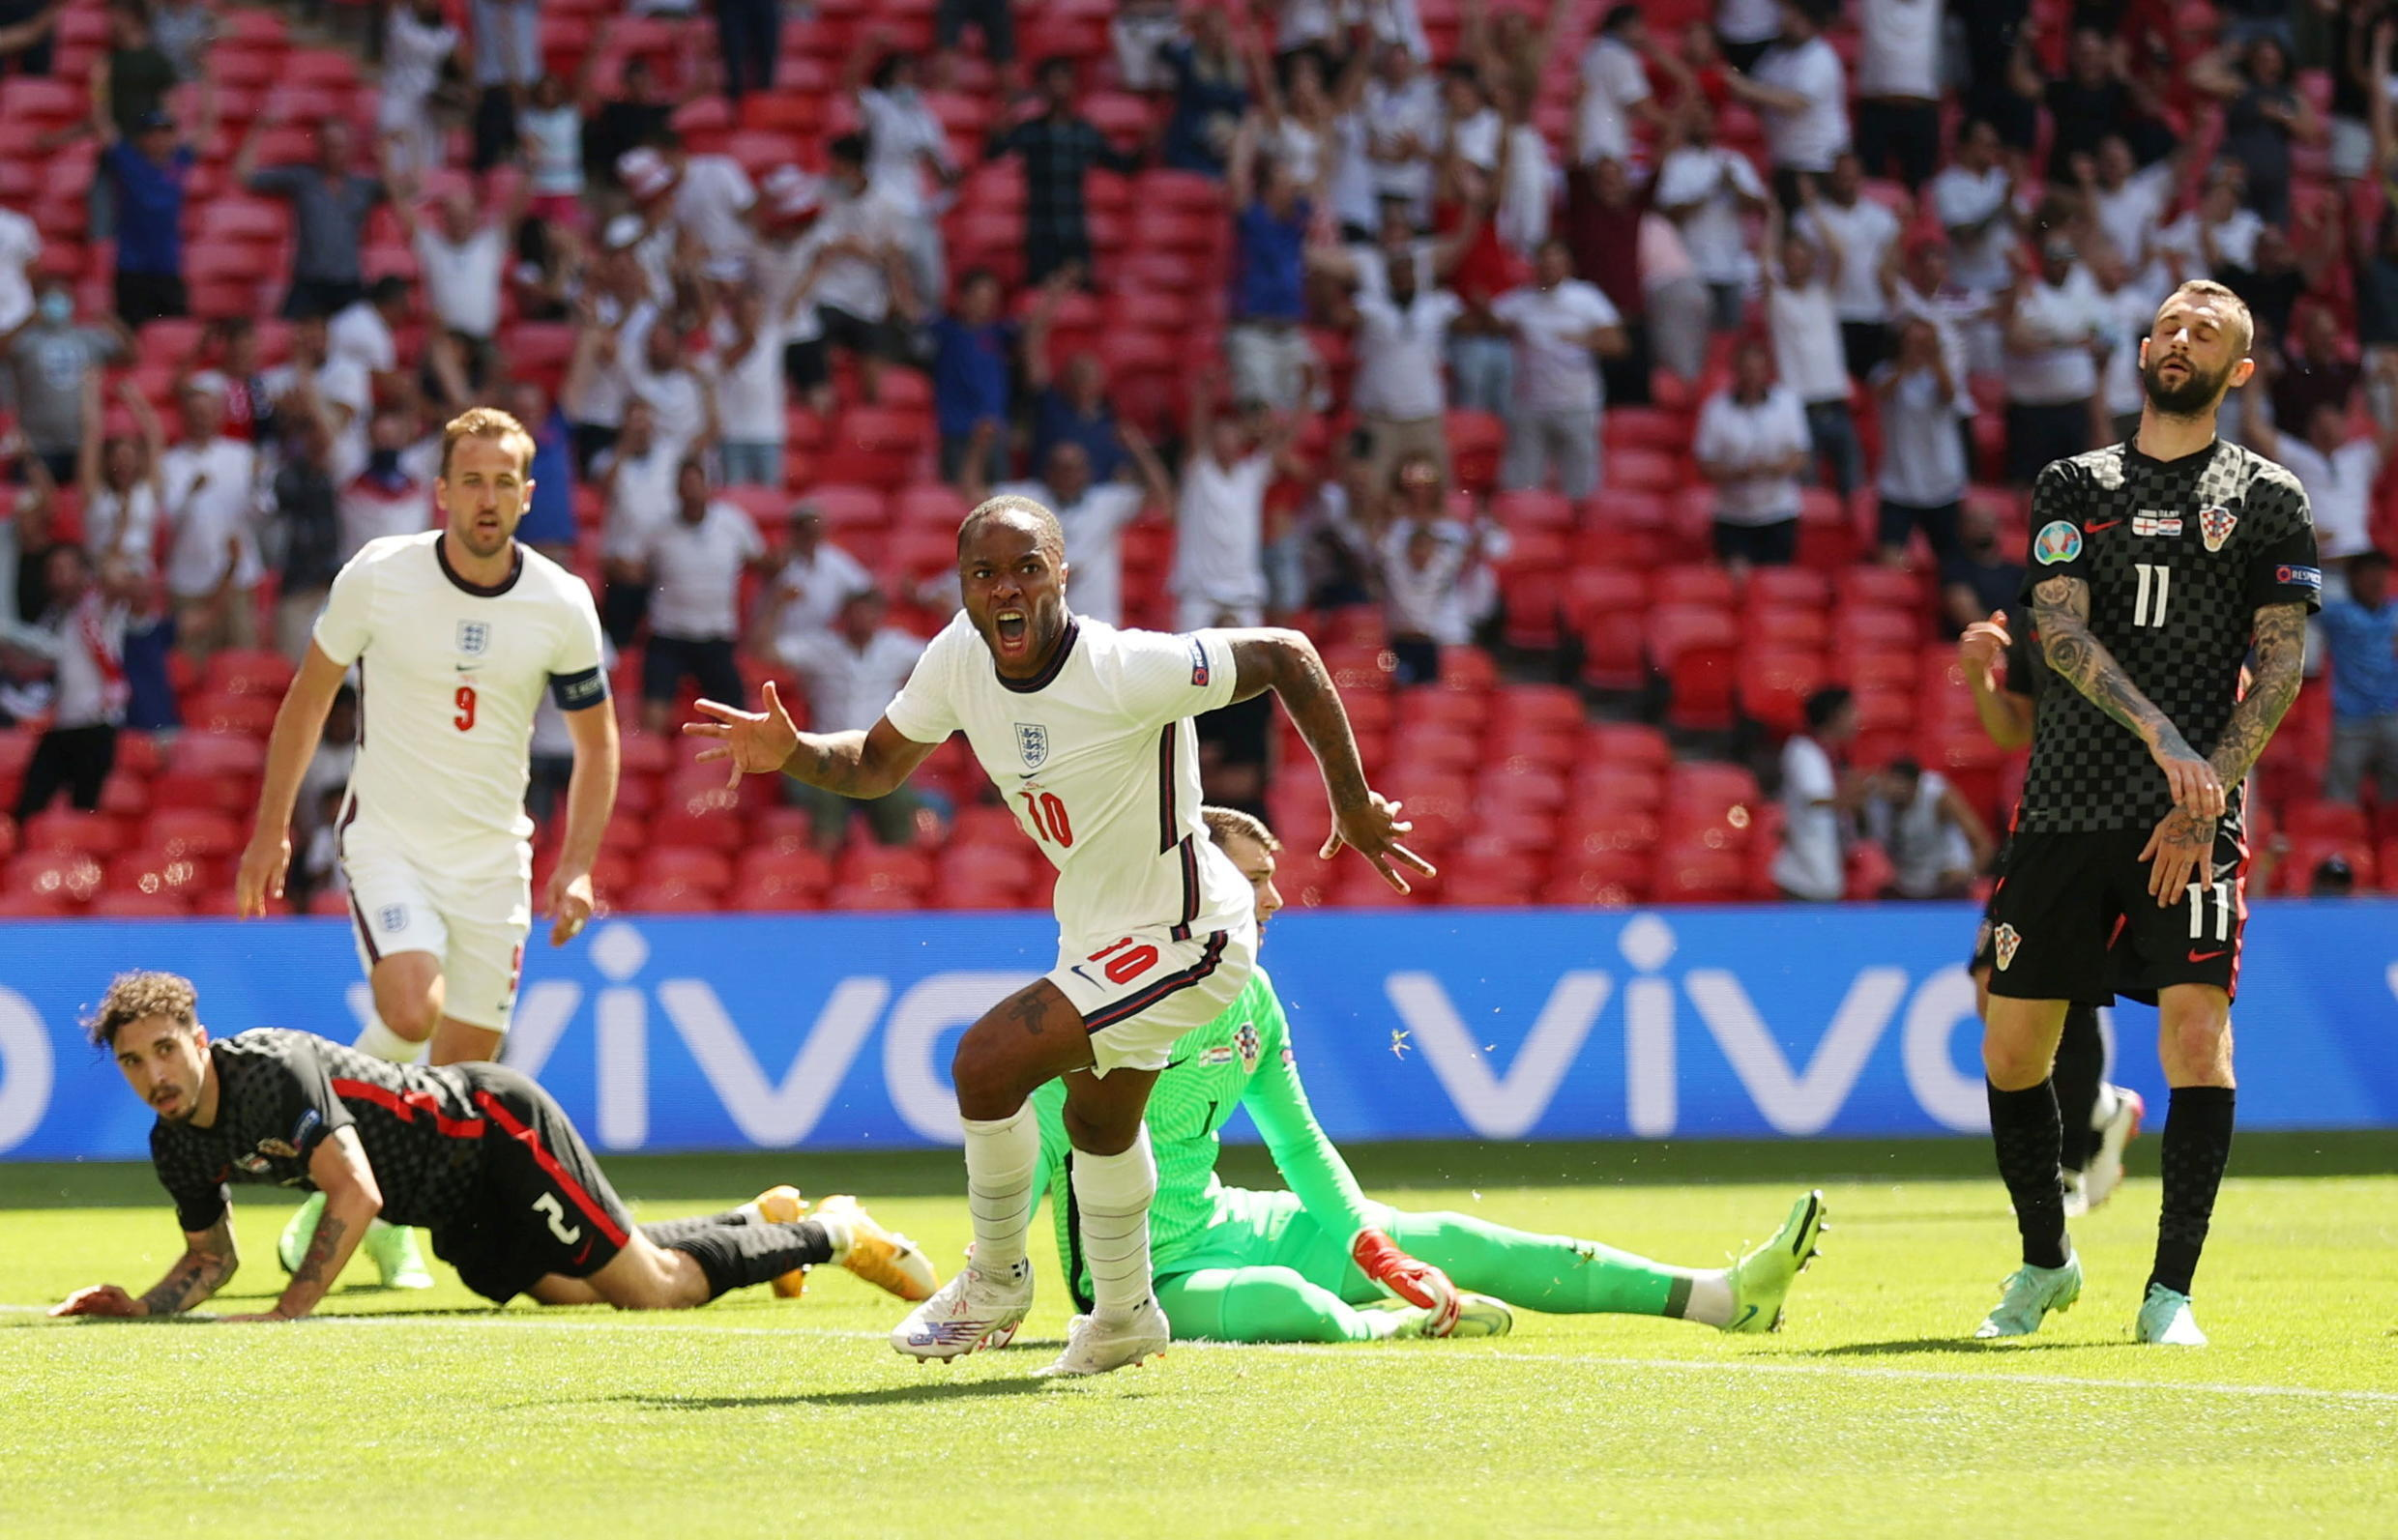 2021-06-13T153833Z_1166553359_UP1EH6D13ND0C_RTRMADP_3_SOCCER-EURO-ENG-CRO-REPORT